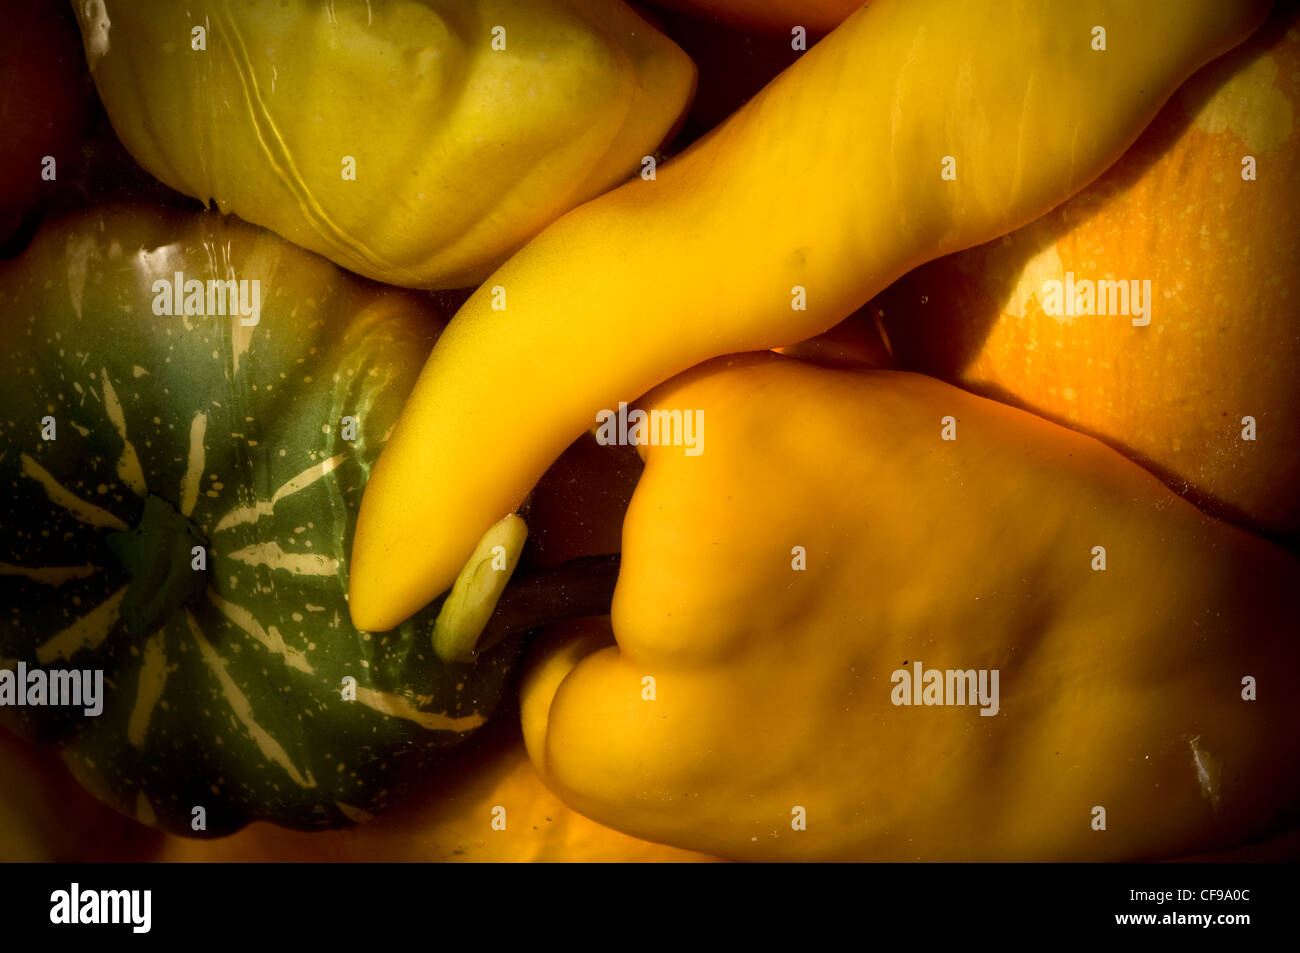 chilli's and peppers, antioxidant, bell, black, calories, cayenne, chicken, chile, chili, chilli, color, corn, - Stock Image